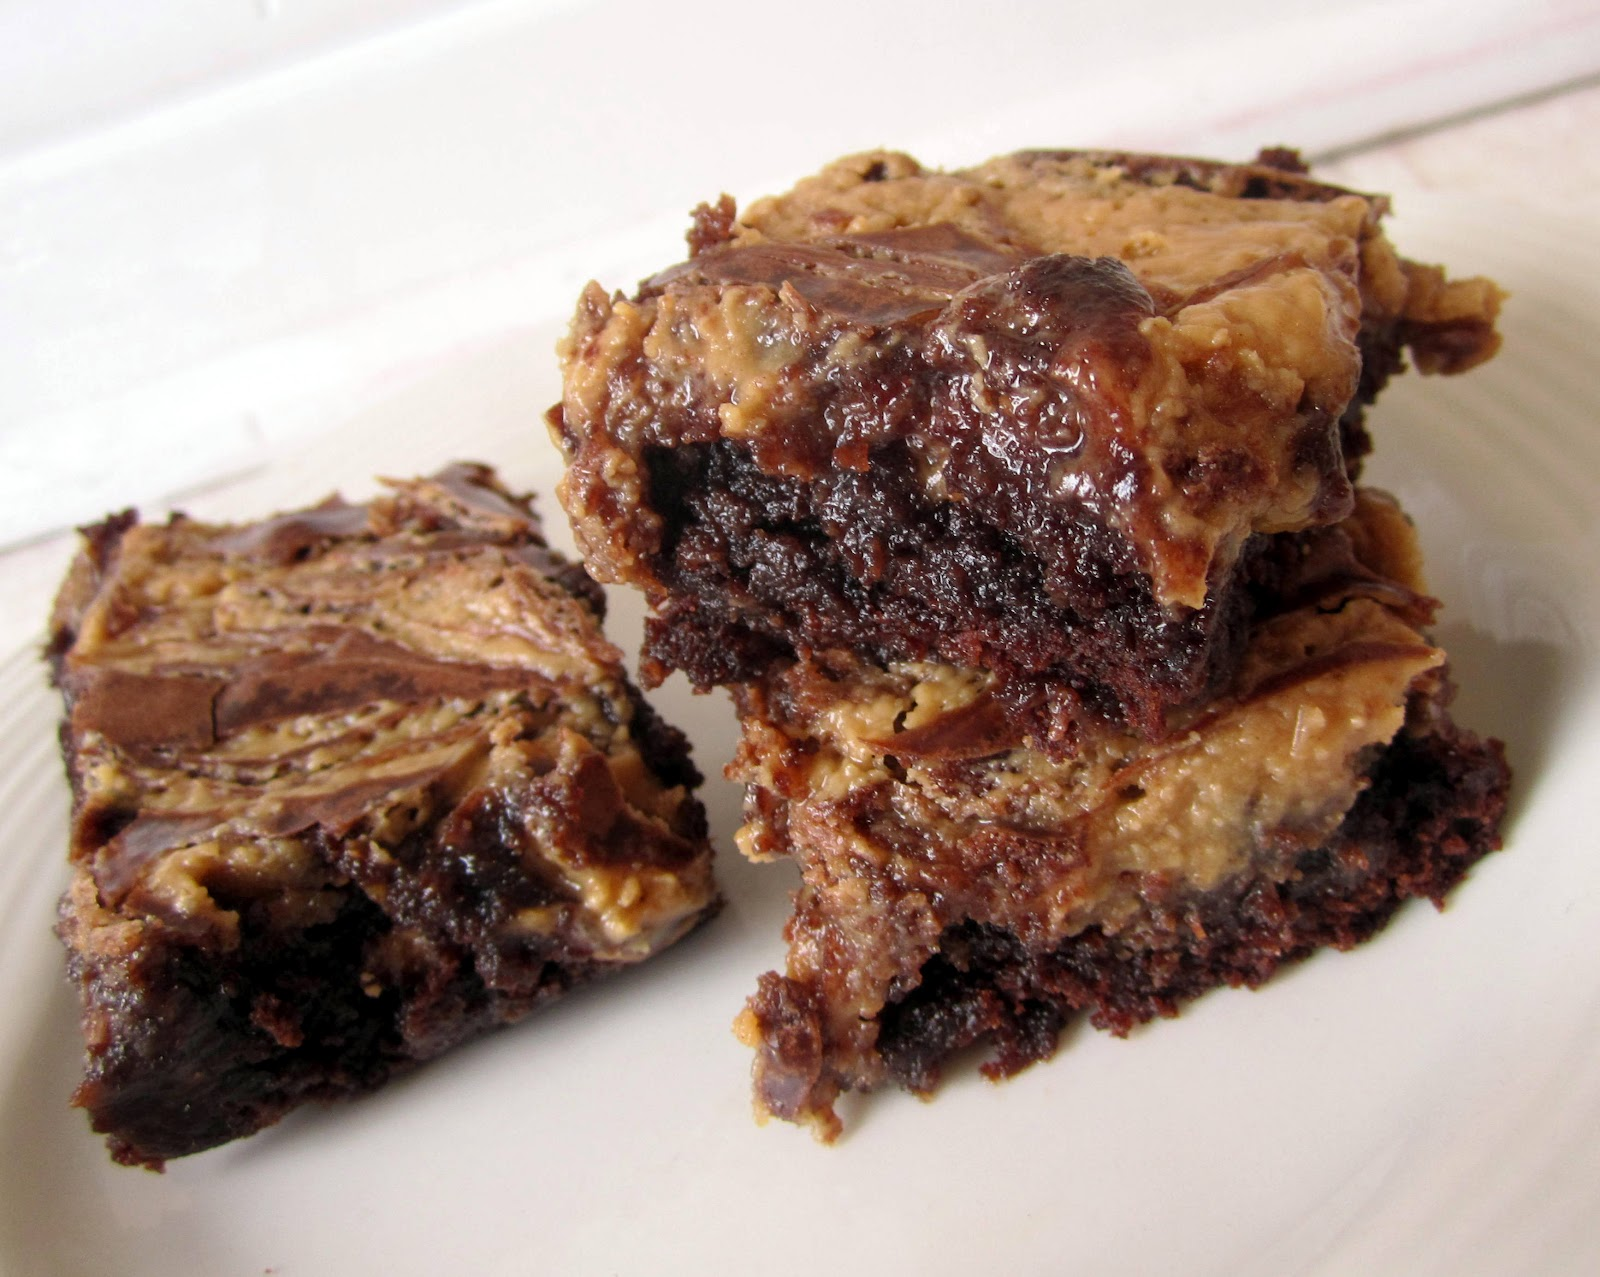 Izzy in the Kitchen: Peanut Butter Swirl Brownies